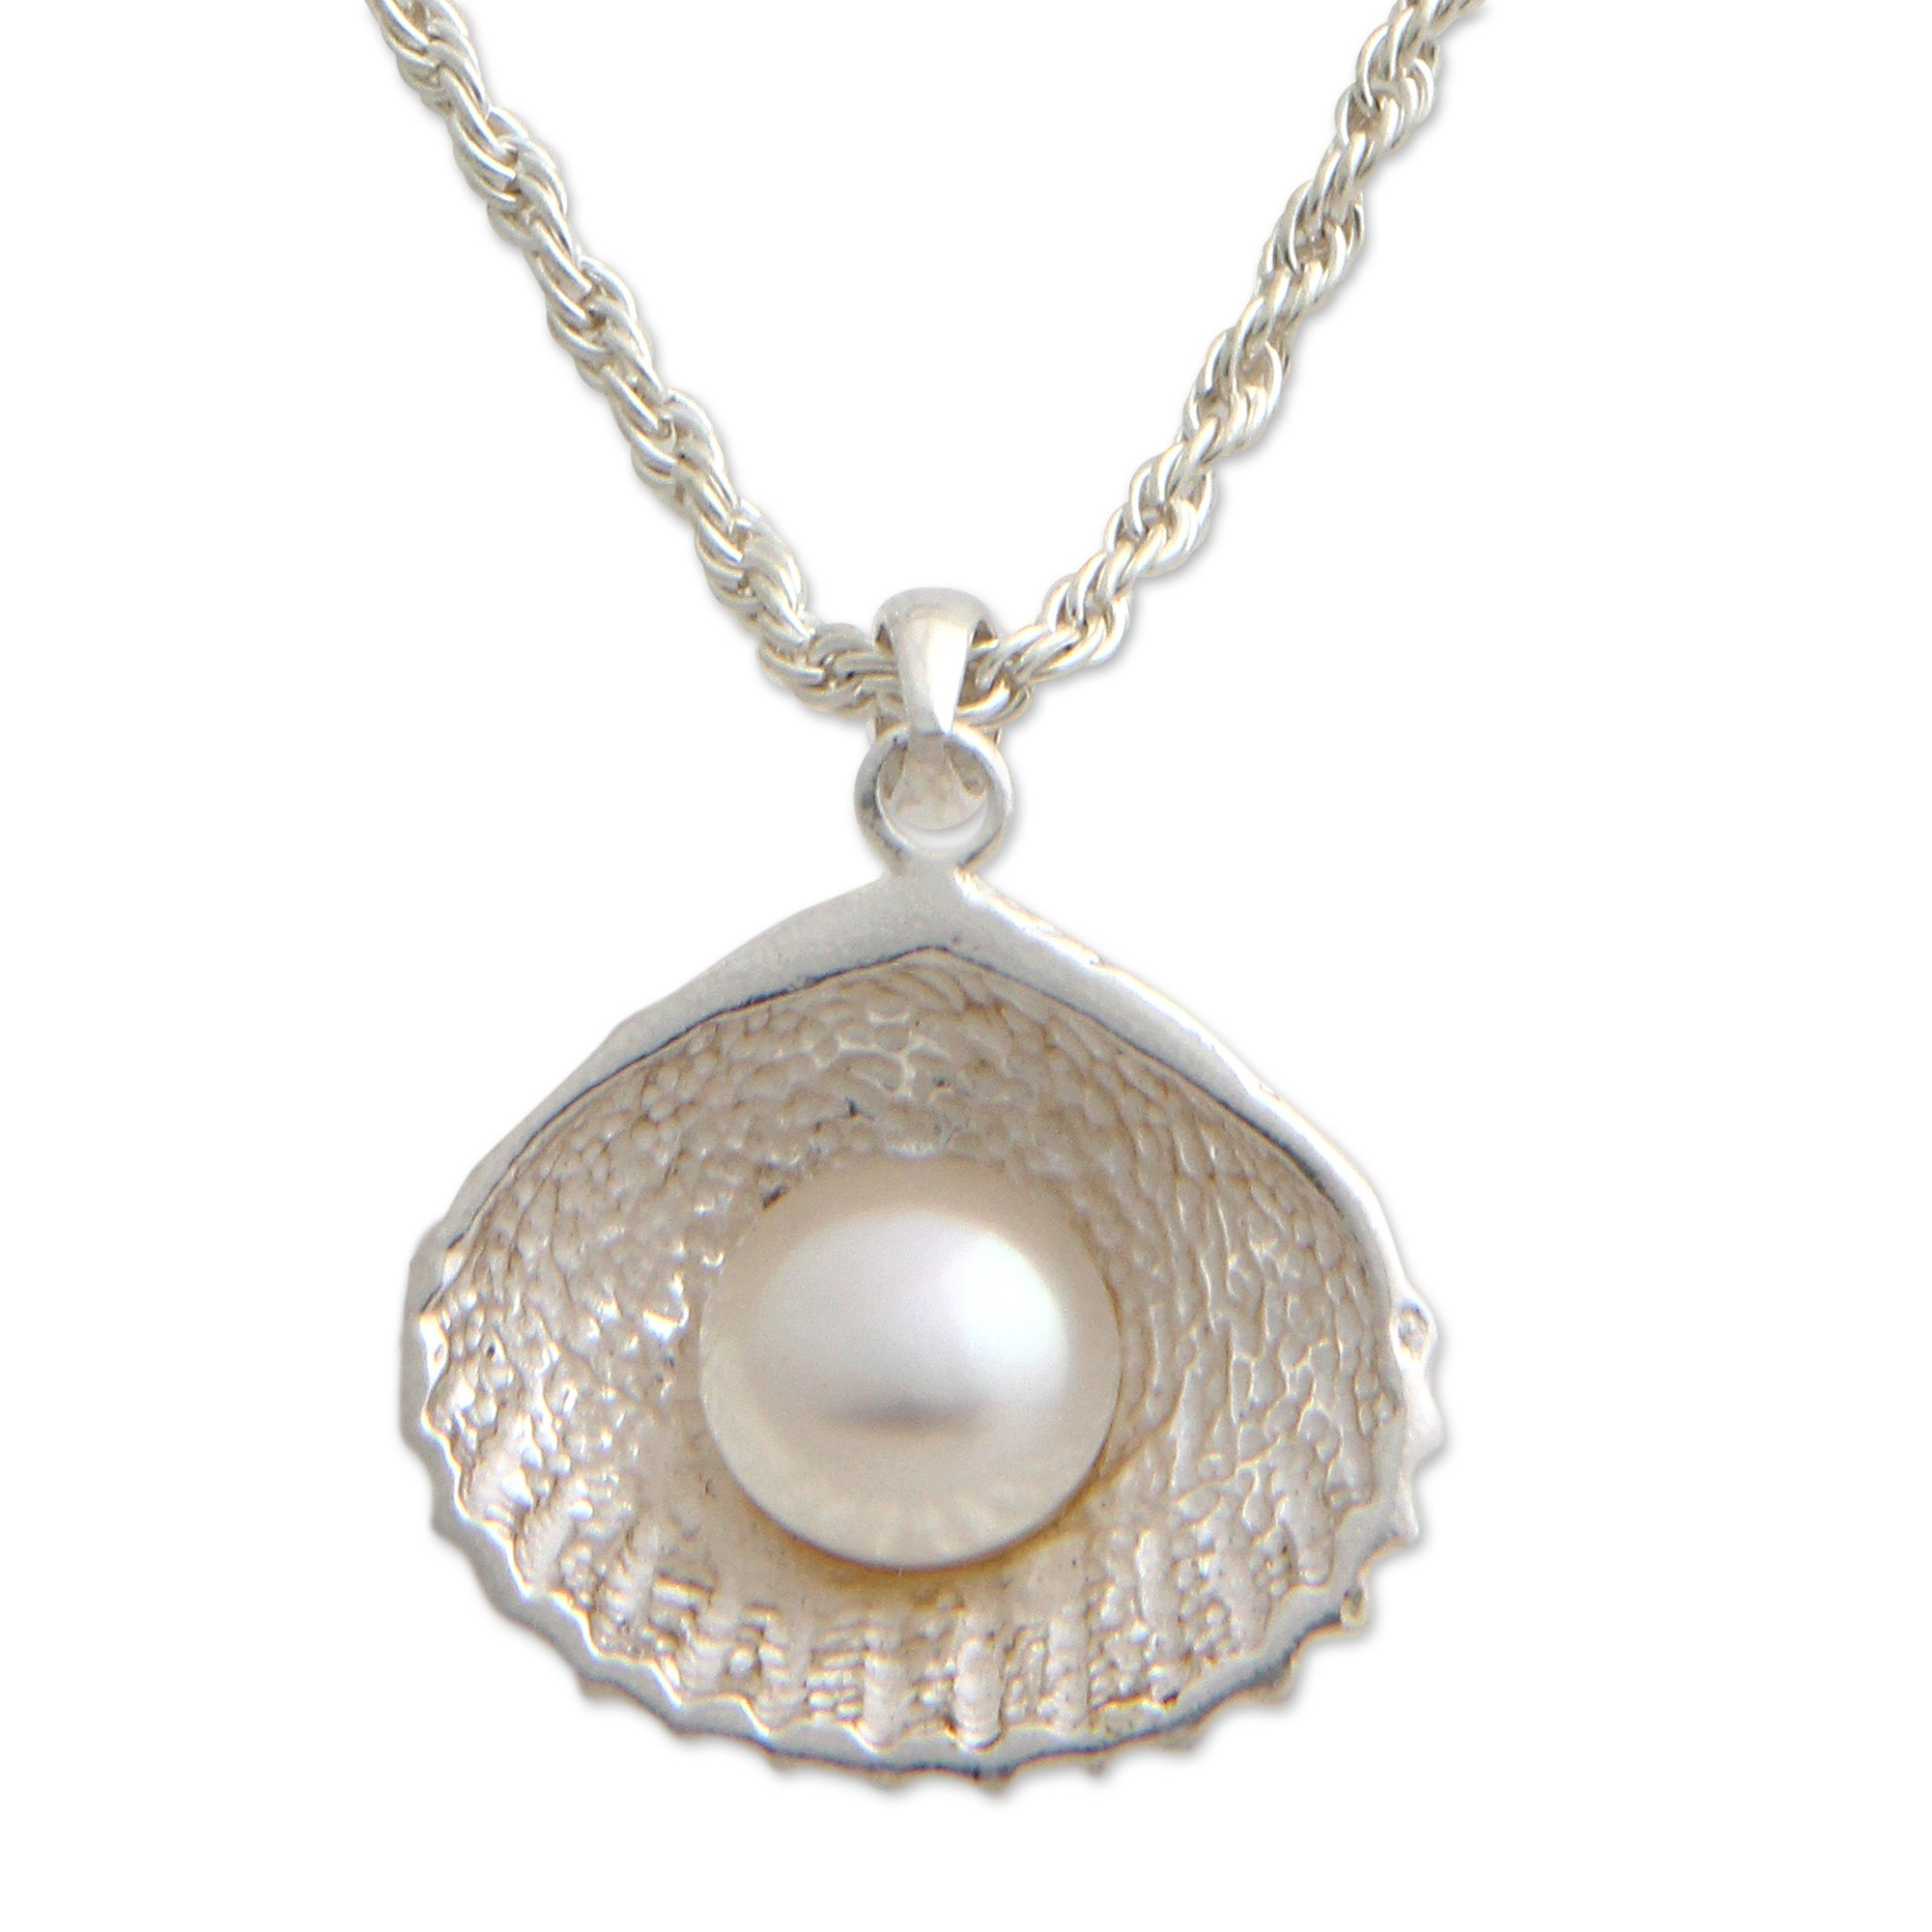 NOVICA White Cultured Freshwater Pearl .925 Sterling Silver Necklace, 19.75'' 'Oyster Secrets'